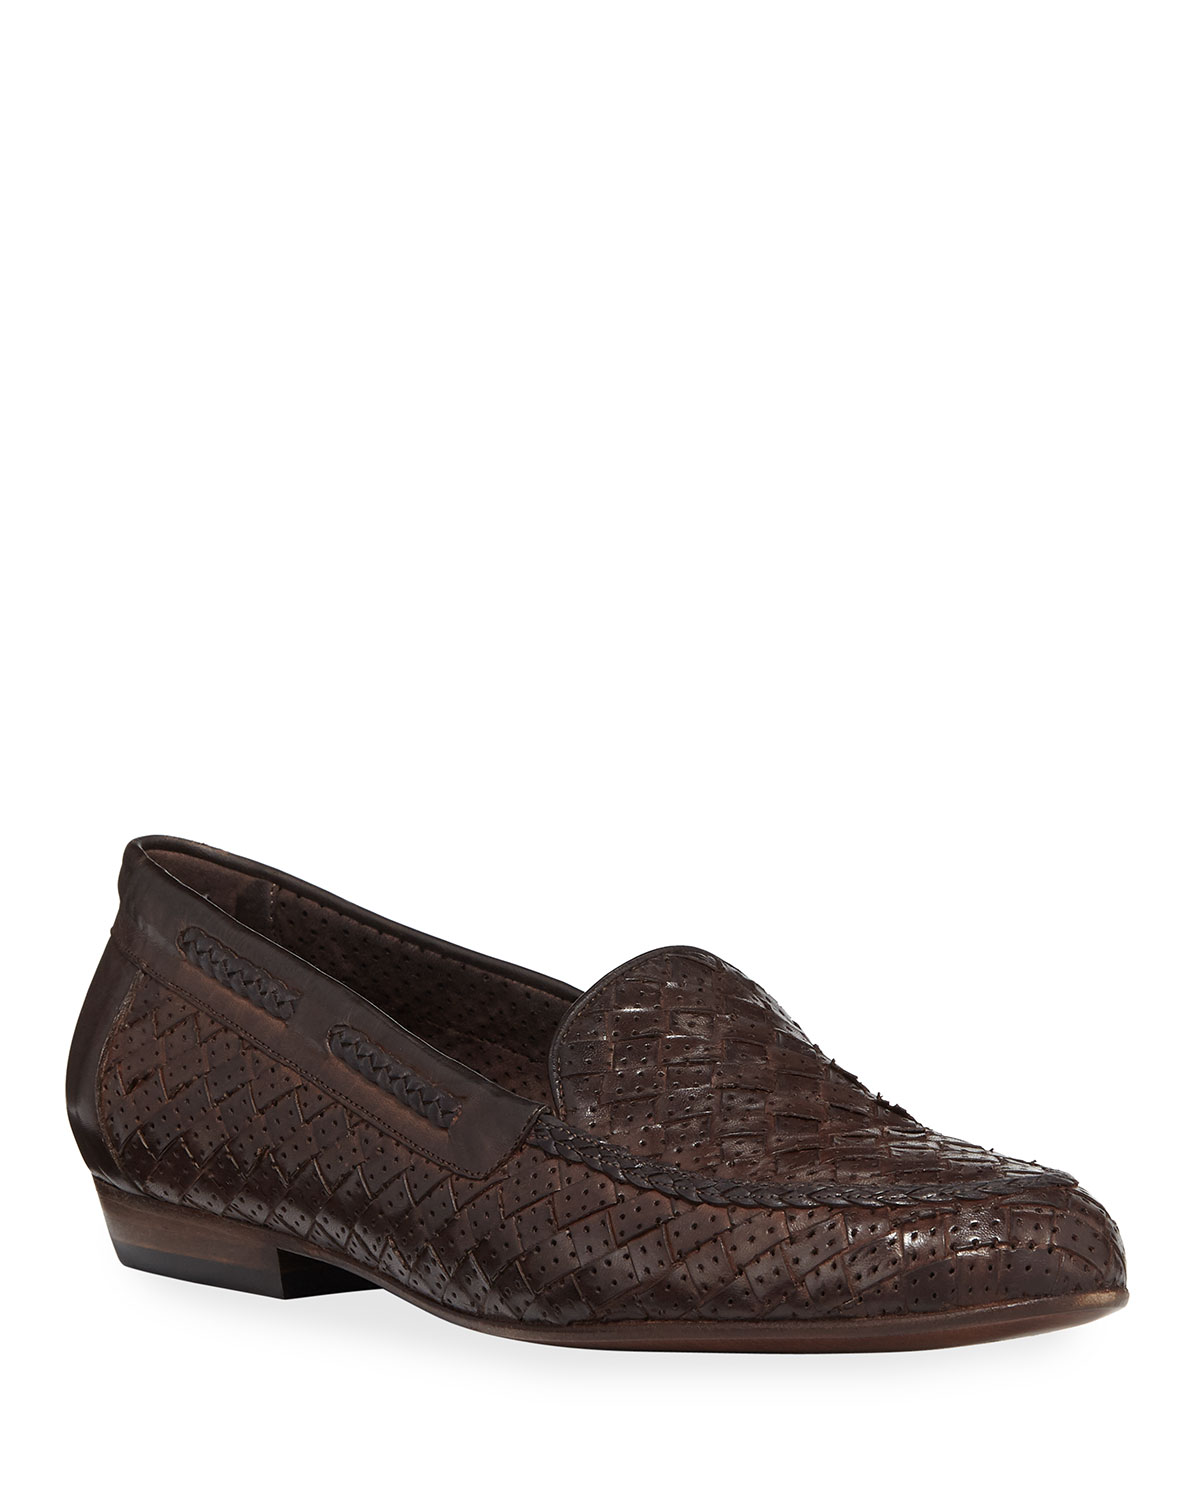 038074e31a7 Sesto Meucci Nellie Woven Perforated Loafer